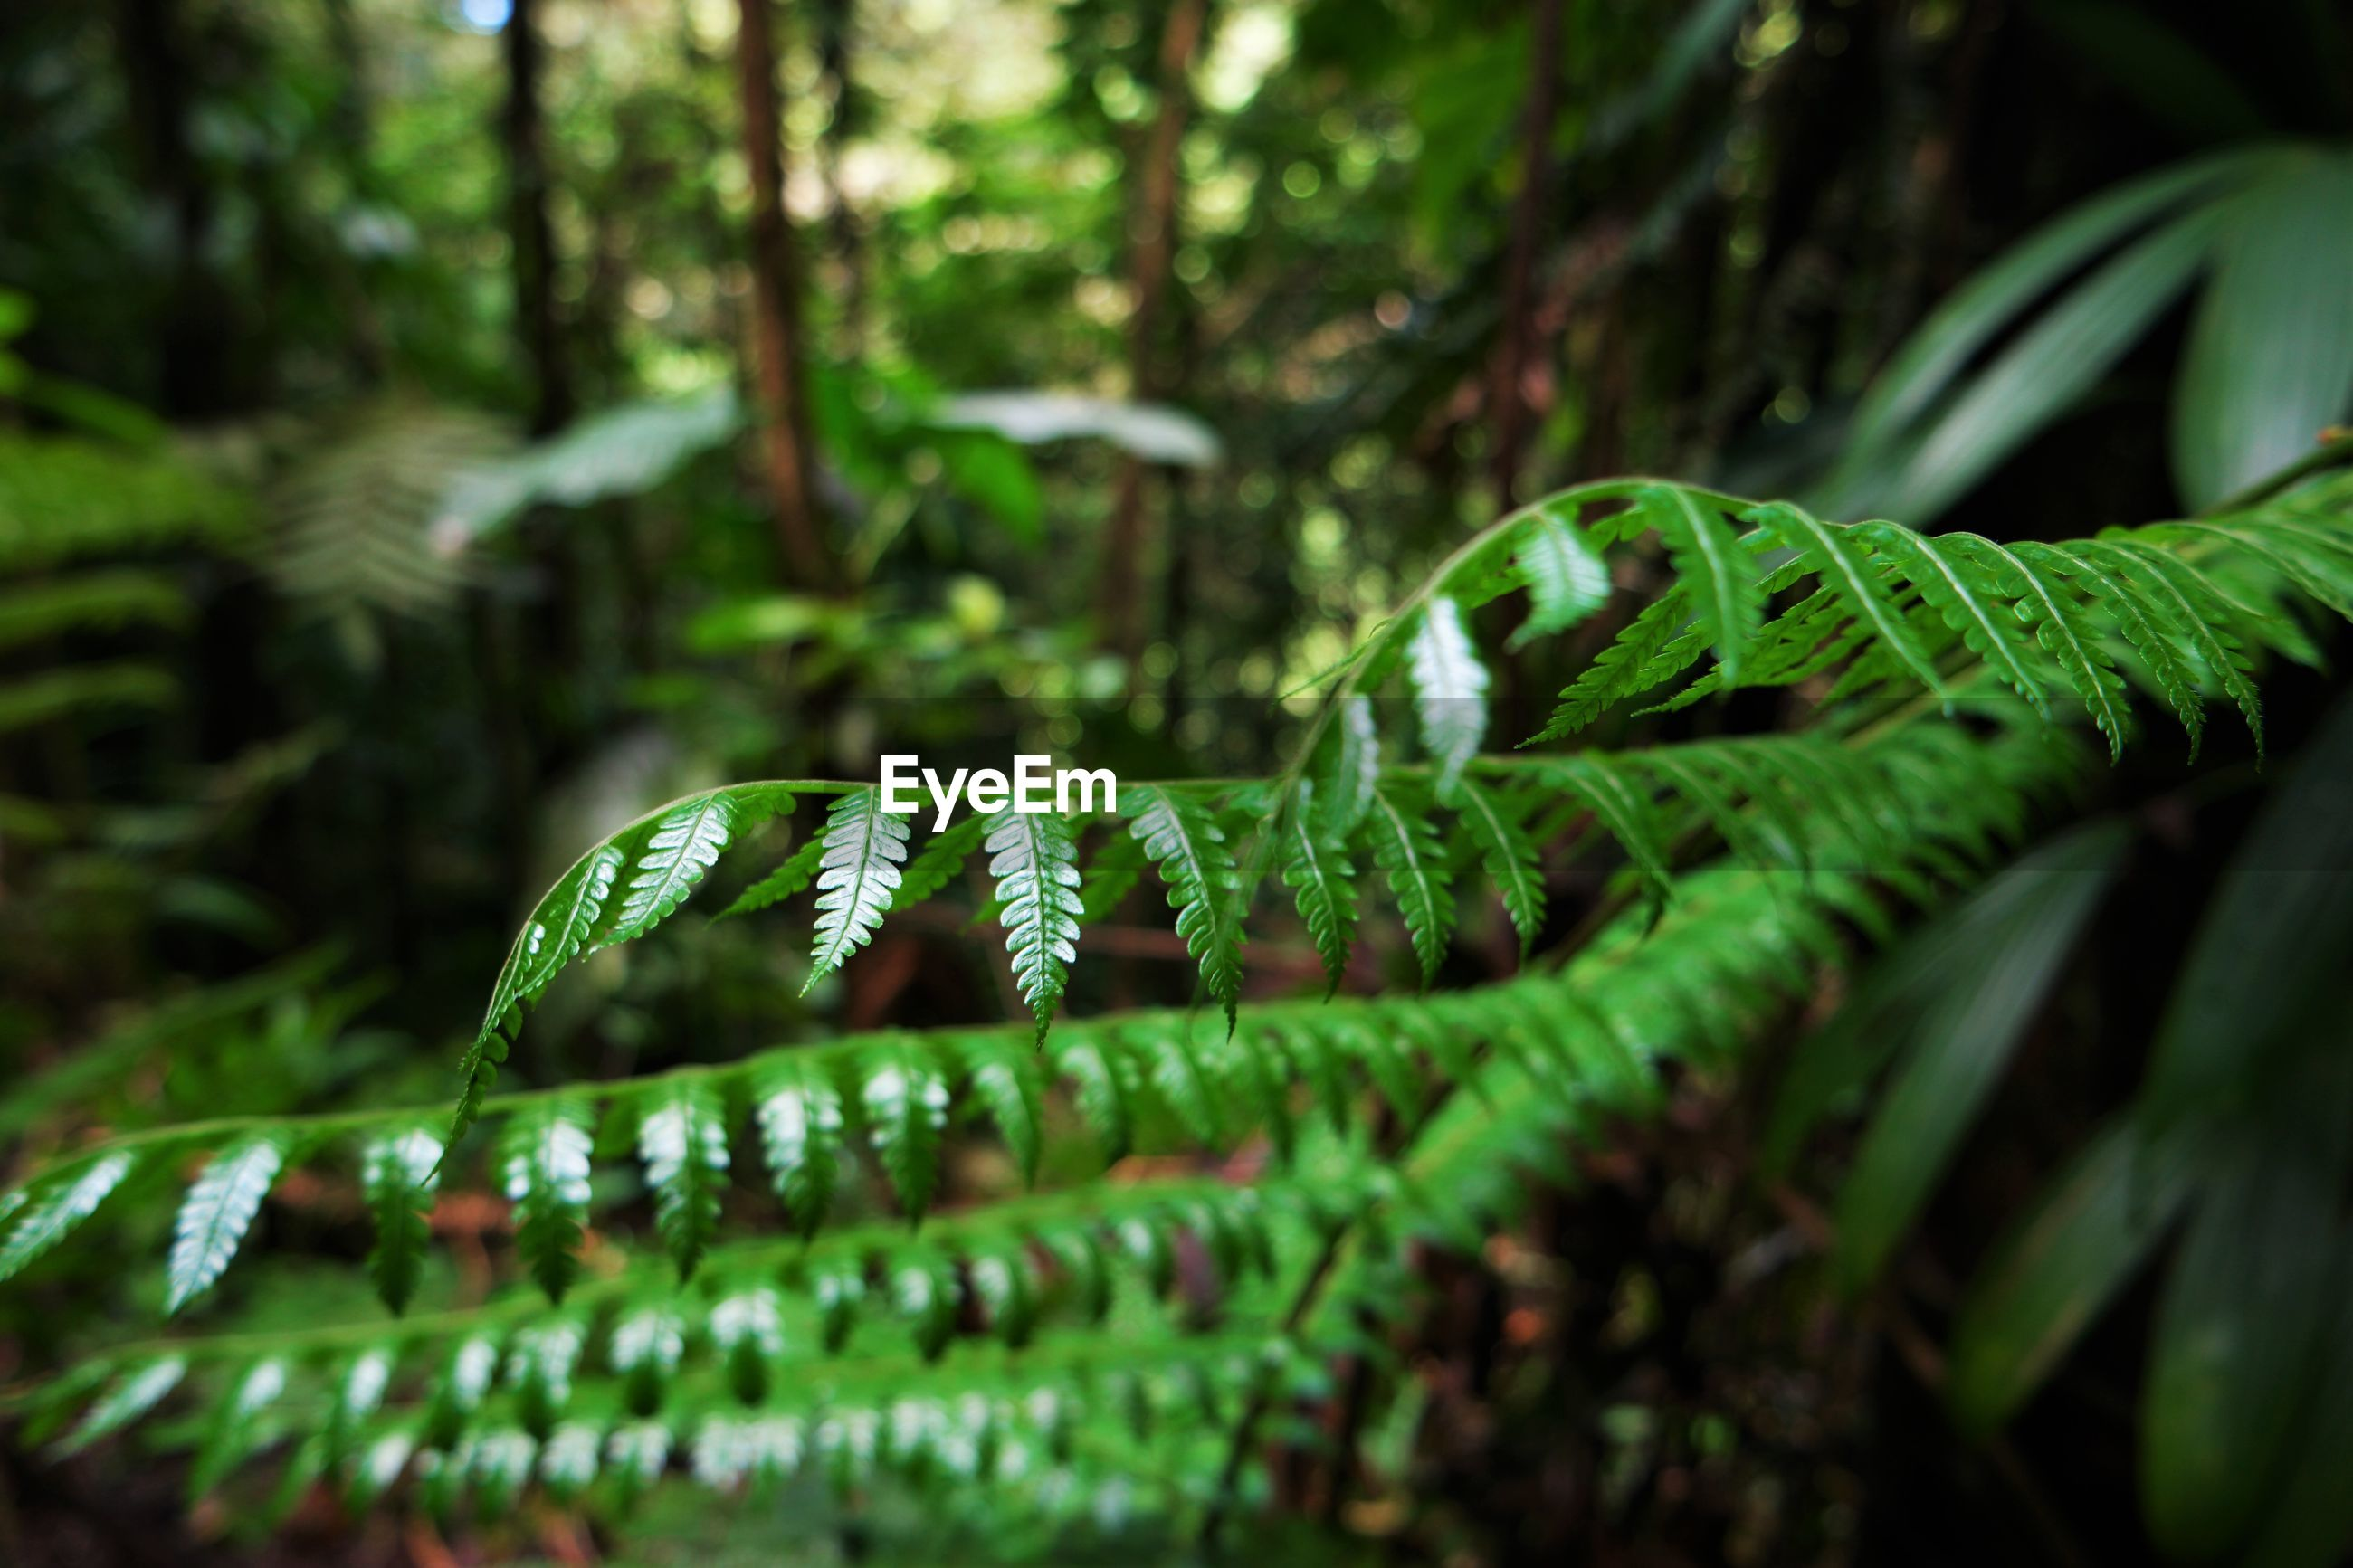 Close-up of fern in forest